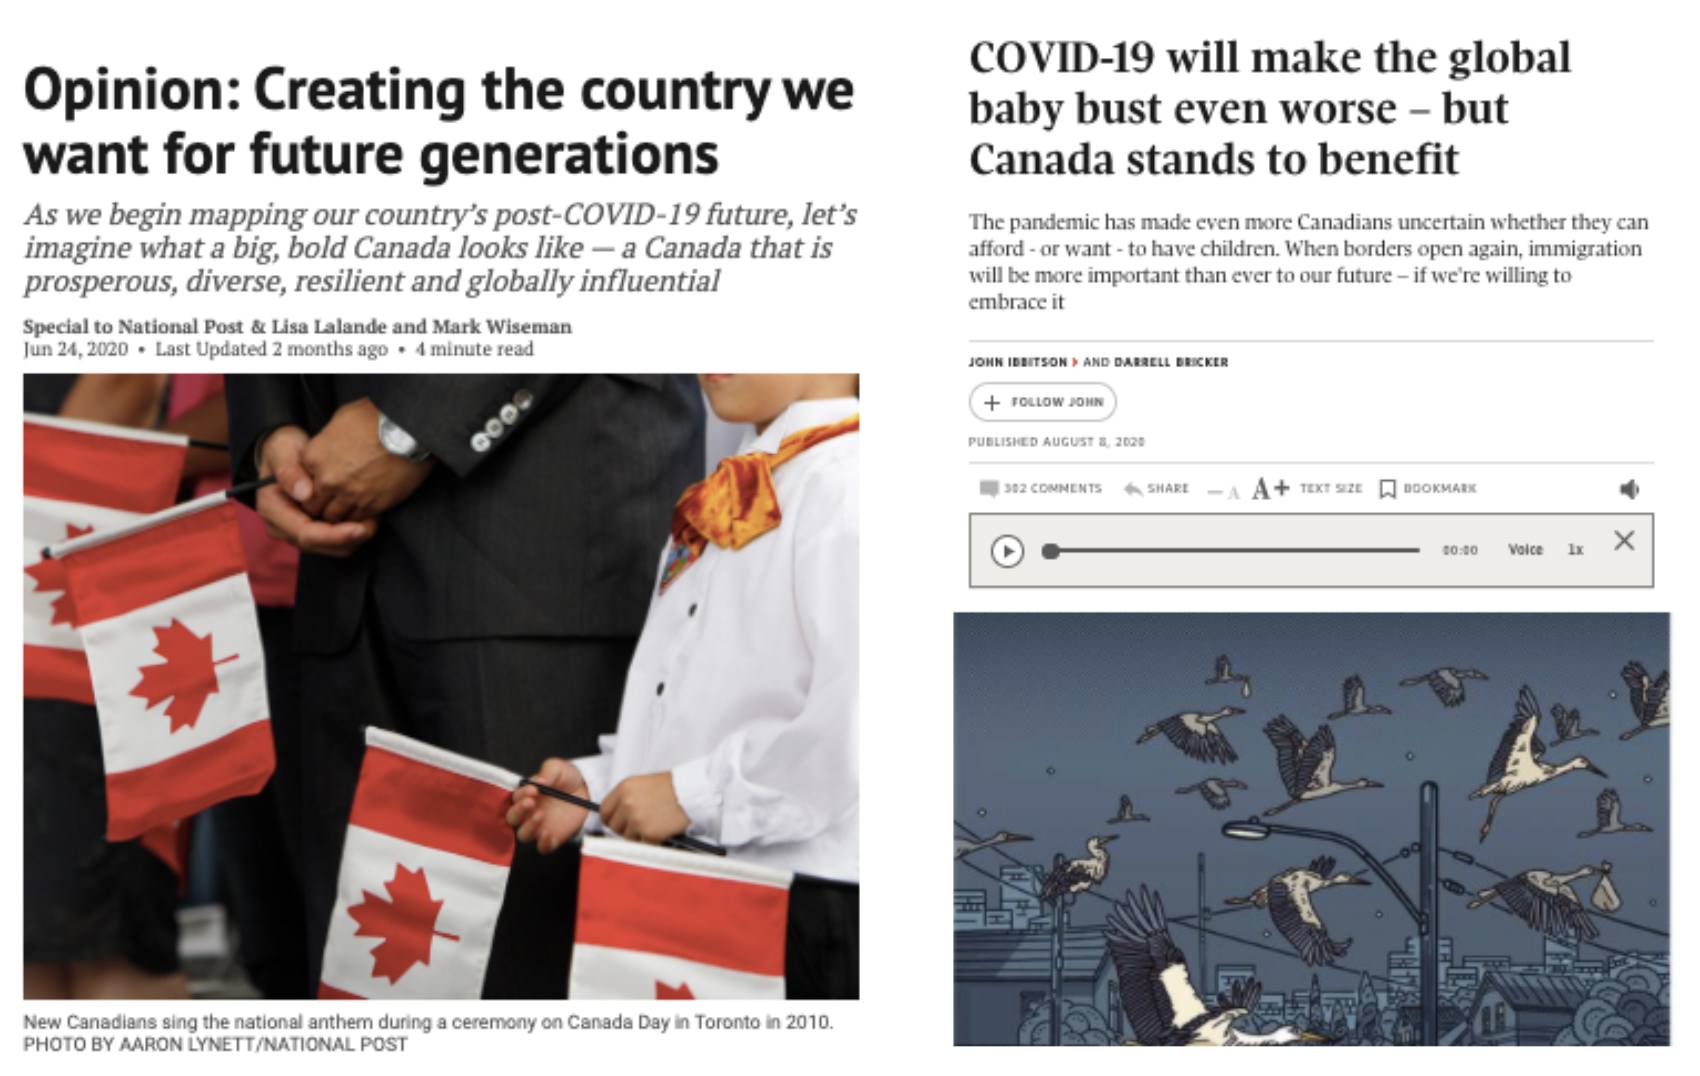 """Screenshot of an online article reading """"Opinion: Creating the country we want for future generations"""" and another reading """"COVID-19 will make the global baby bust even worse - but Canada stands to benefit"""""""